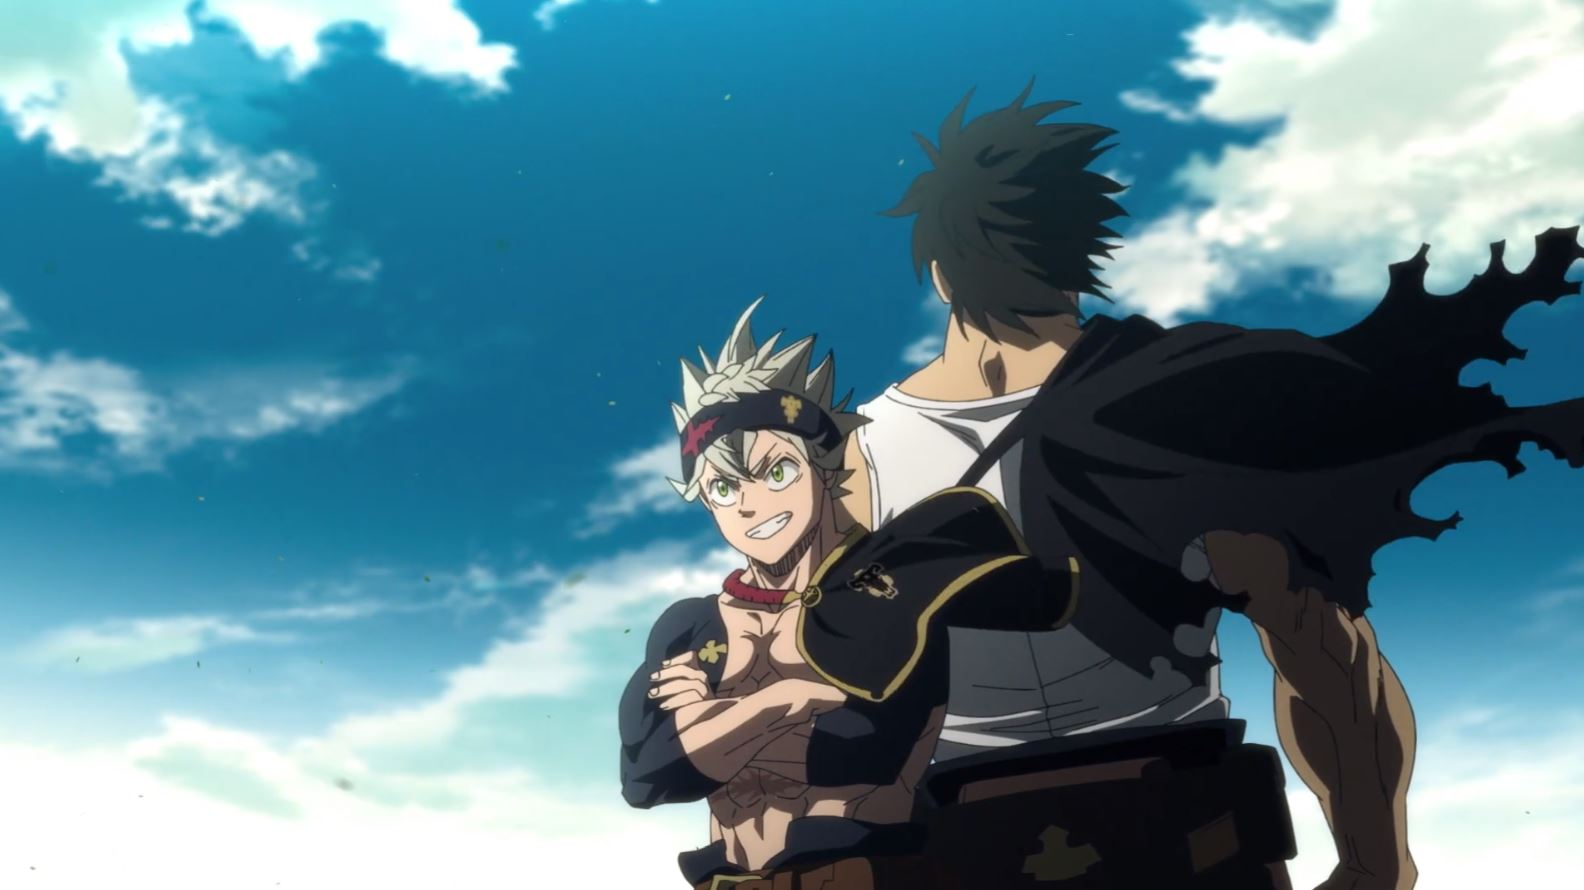 Black Clover Final Episode Synopsis Surfaces Online